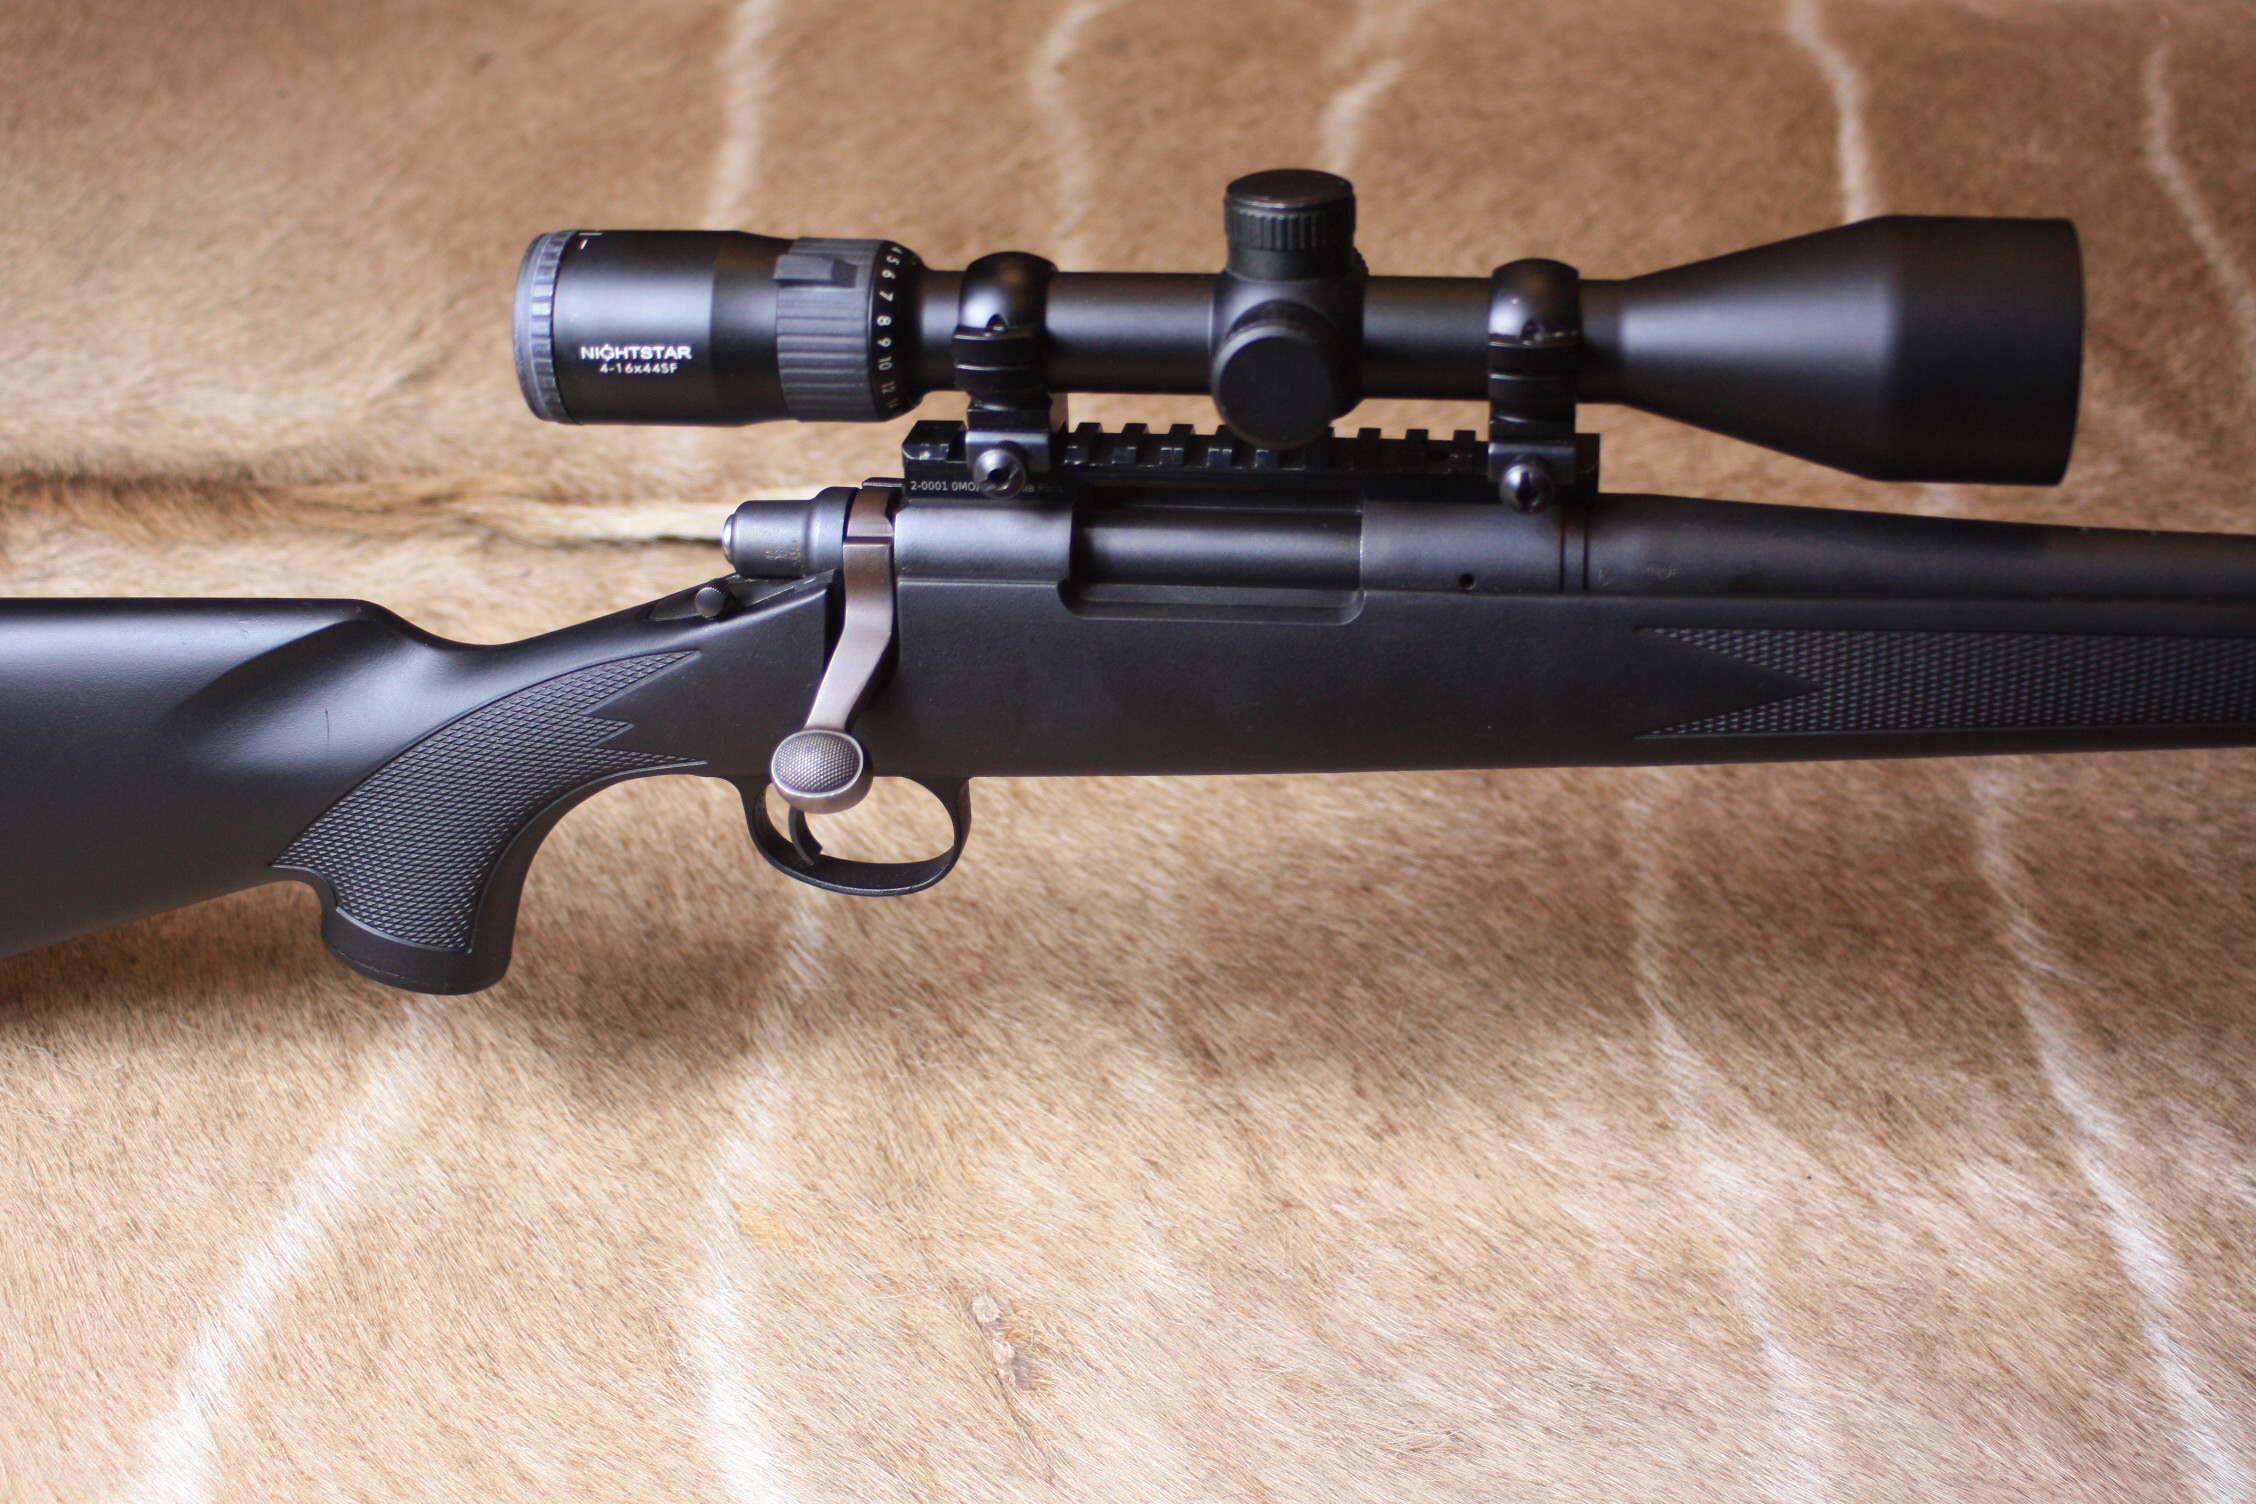 Remington 700 .223 Rifle Setup